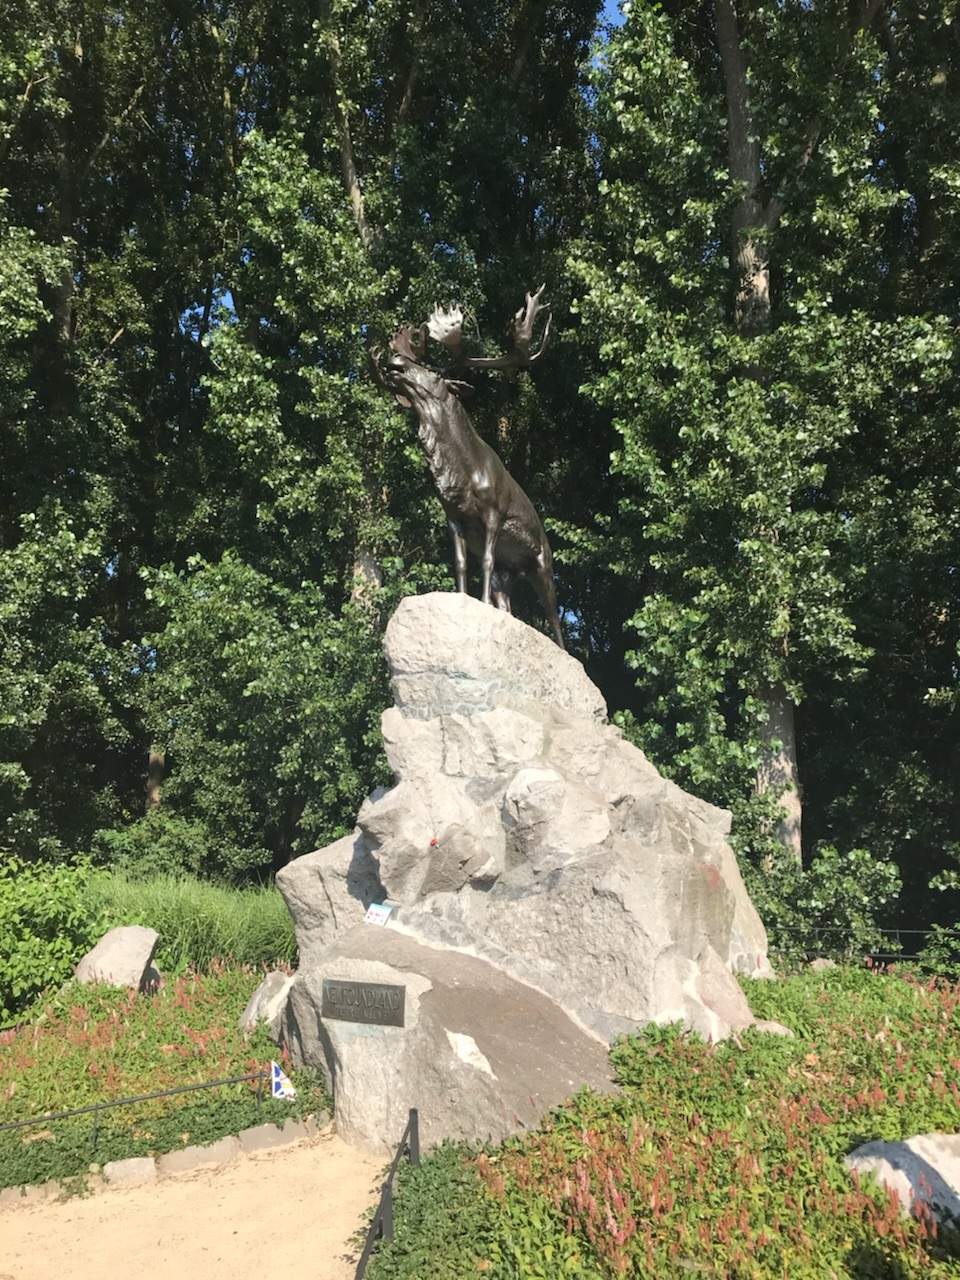 The bronze Caribou monument in Kortrijk (Courtai)